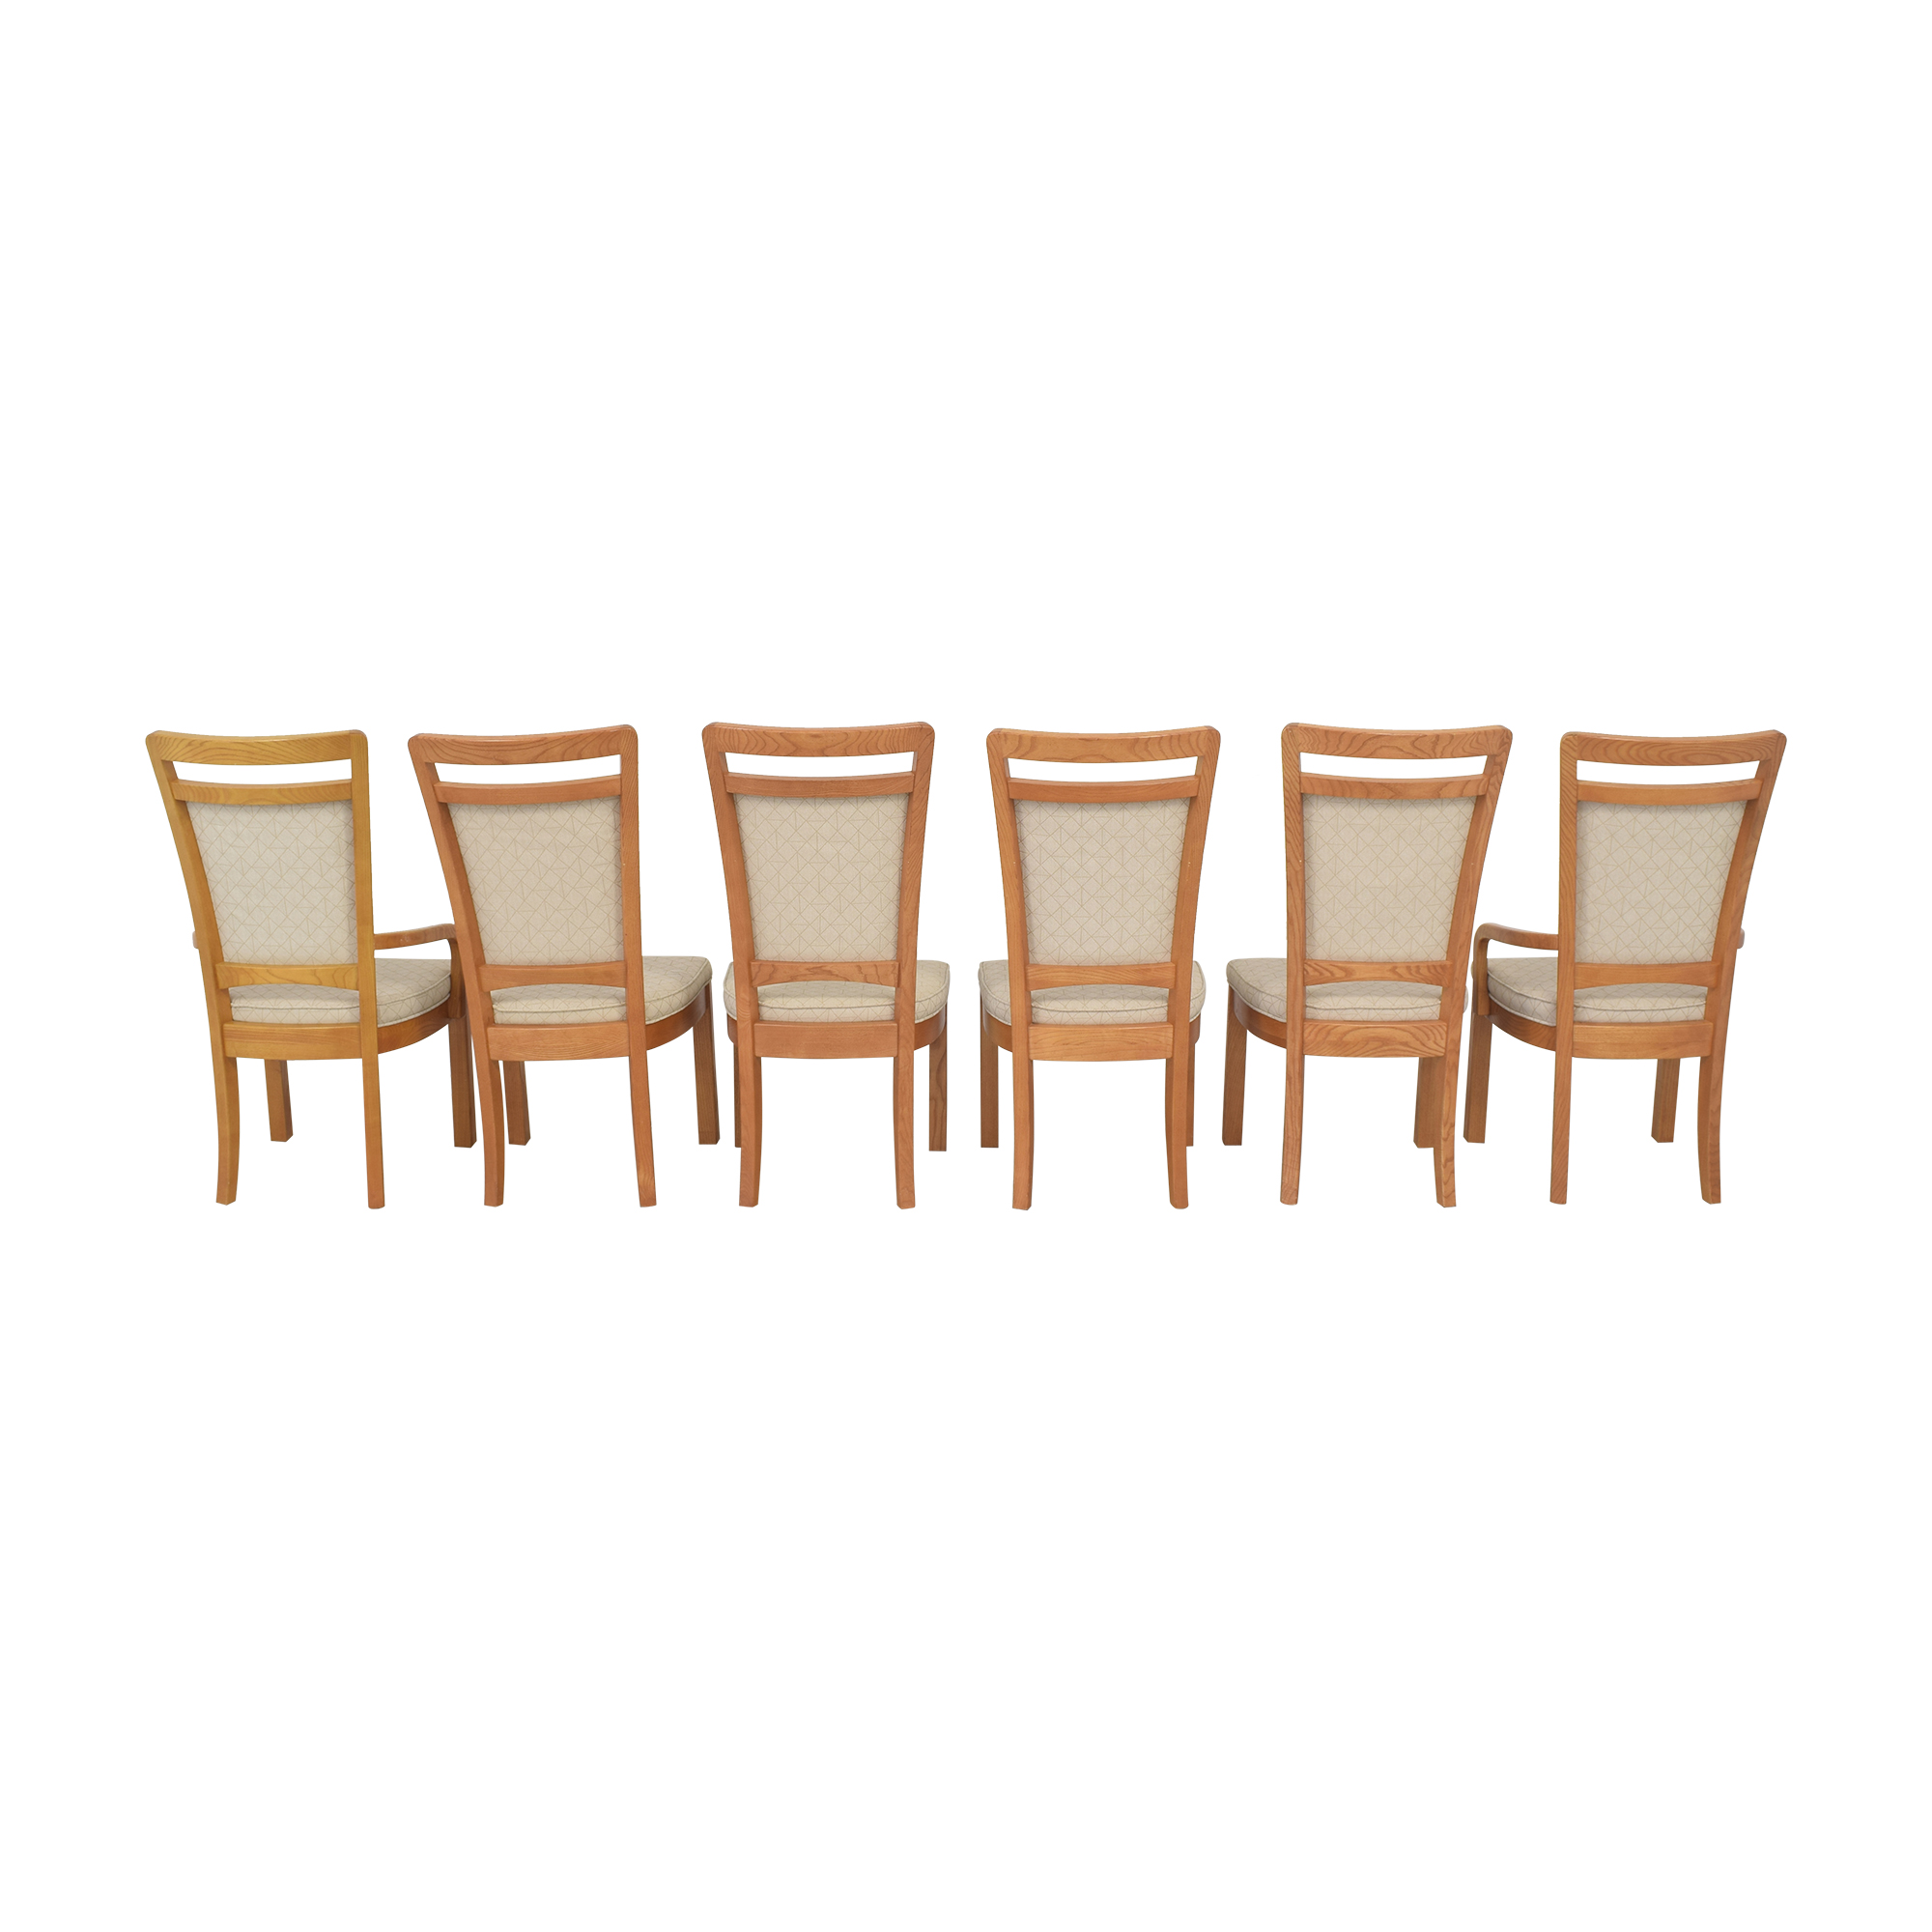 Stanley Upholstered Dining Chairs / Dining Chairs